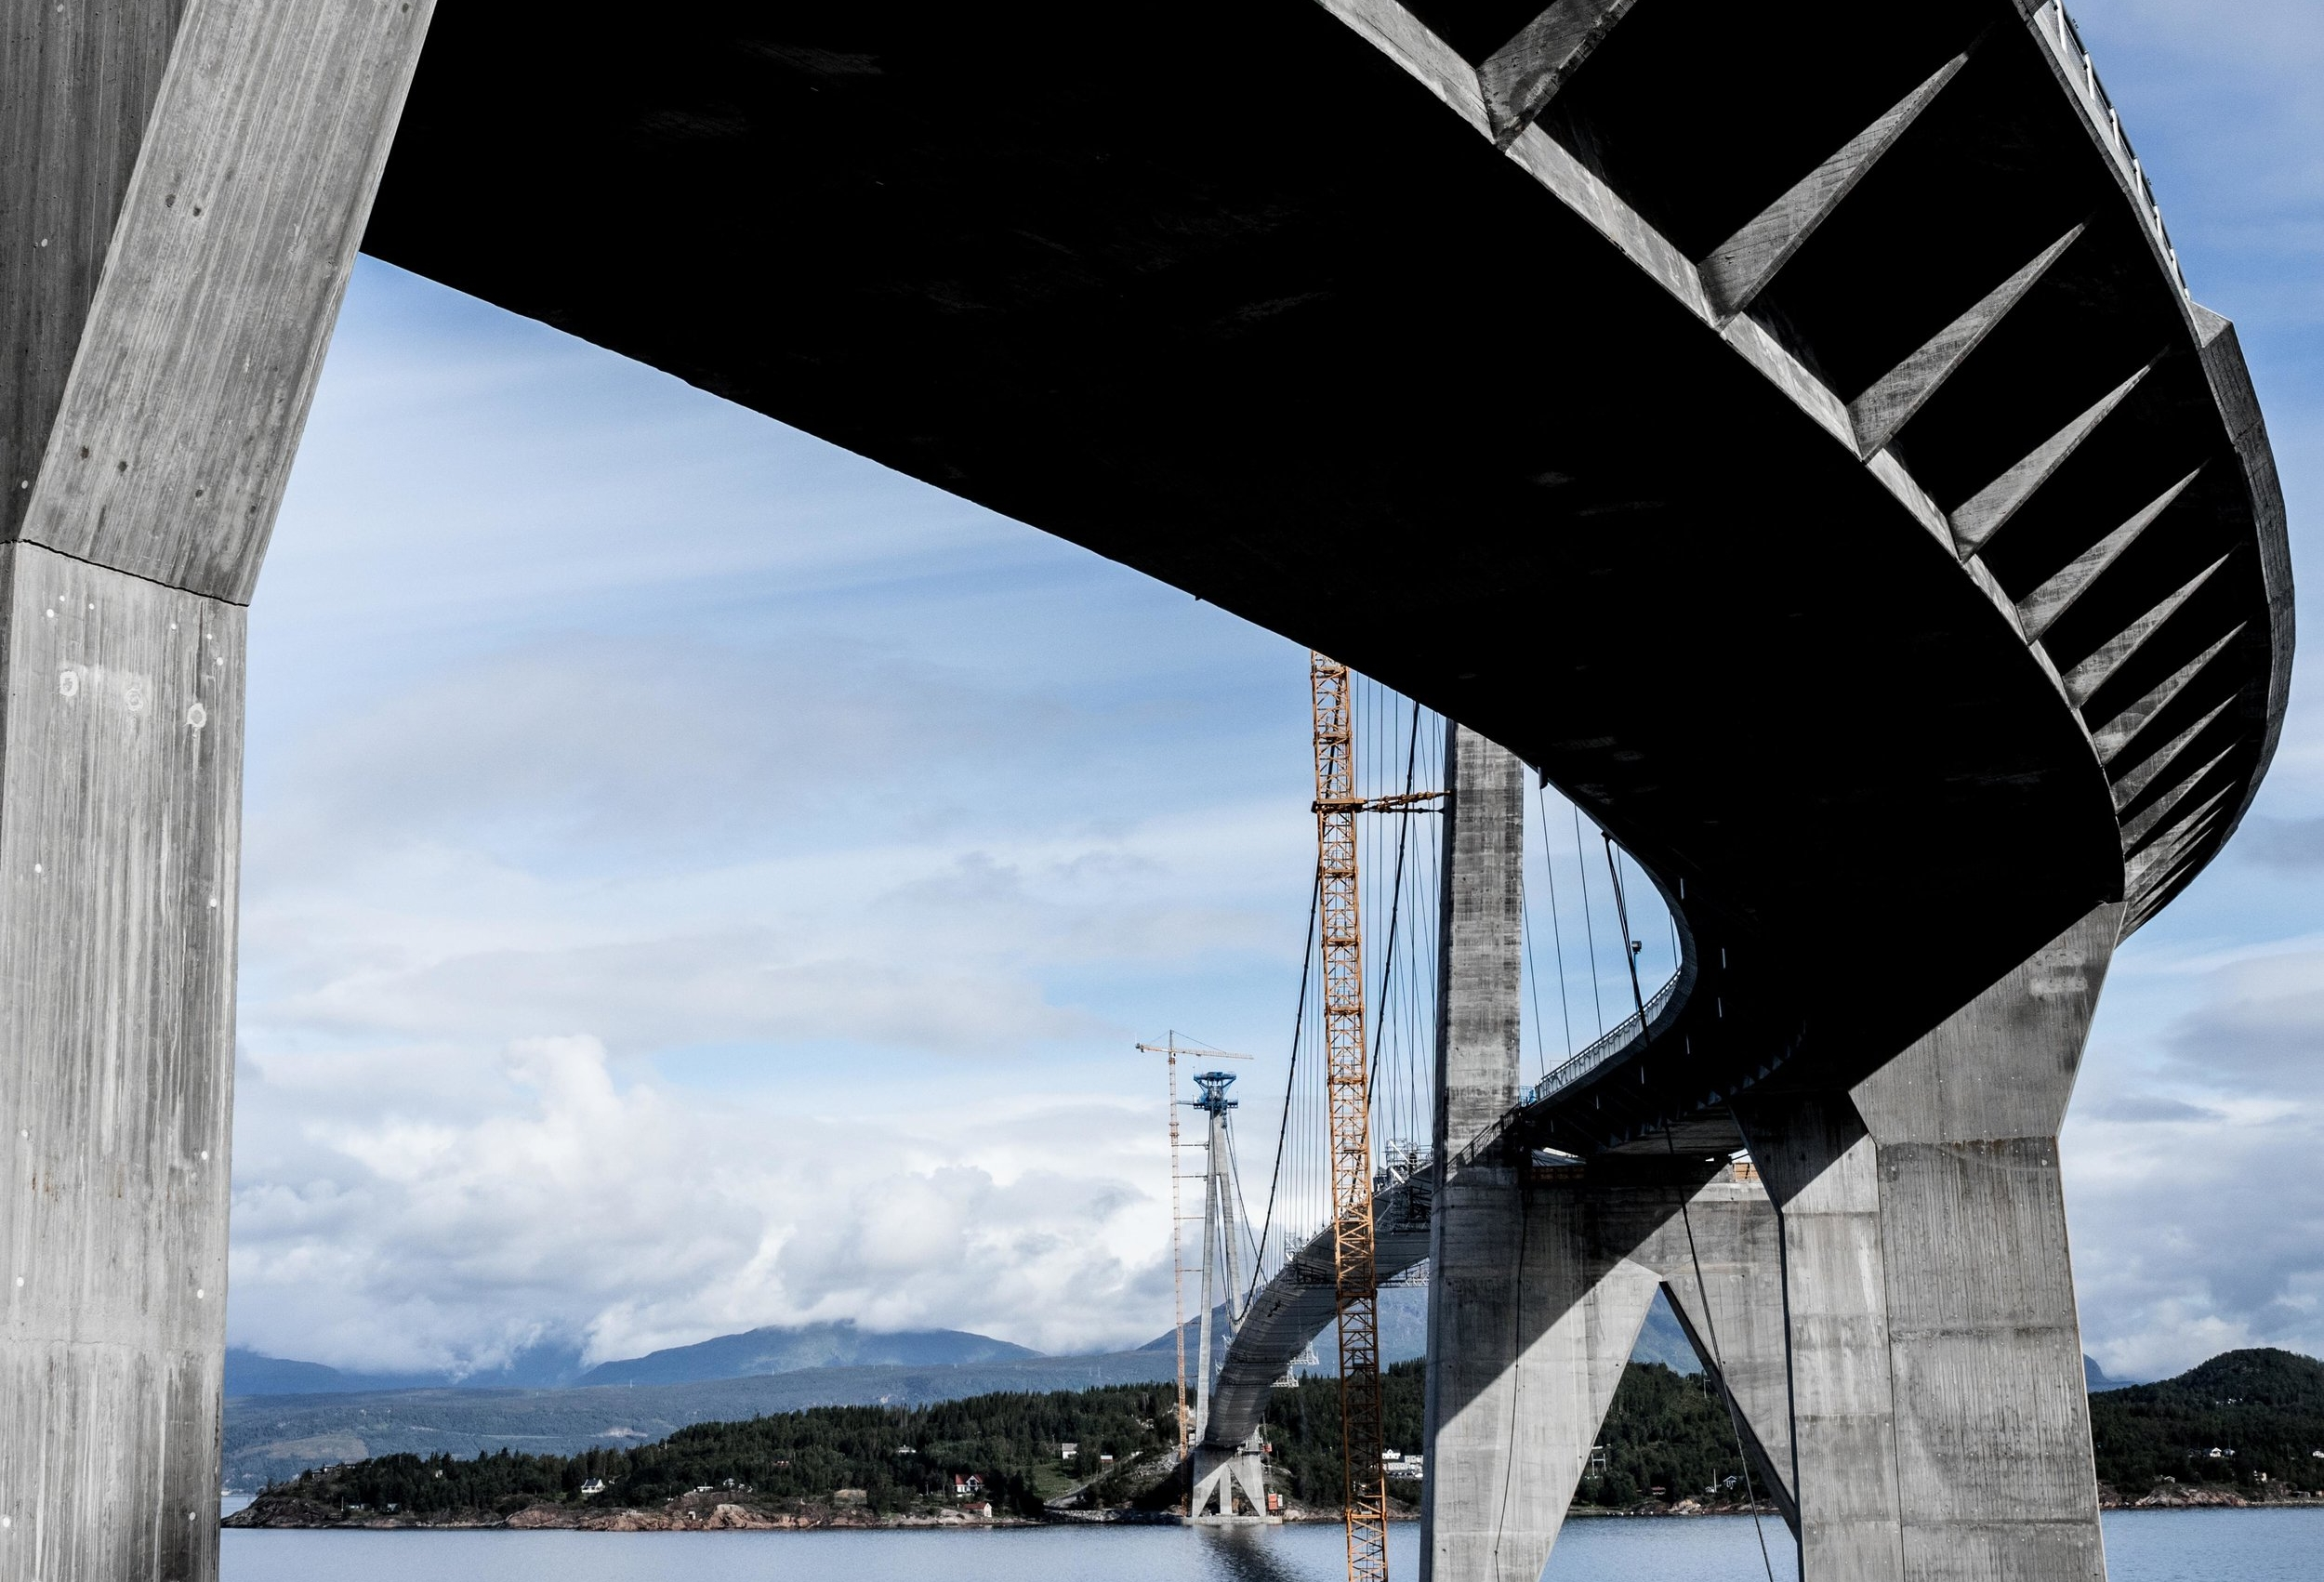 After more than 5 years of construction – the Hålogaland Bridge is open for traffic.